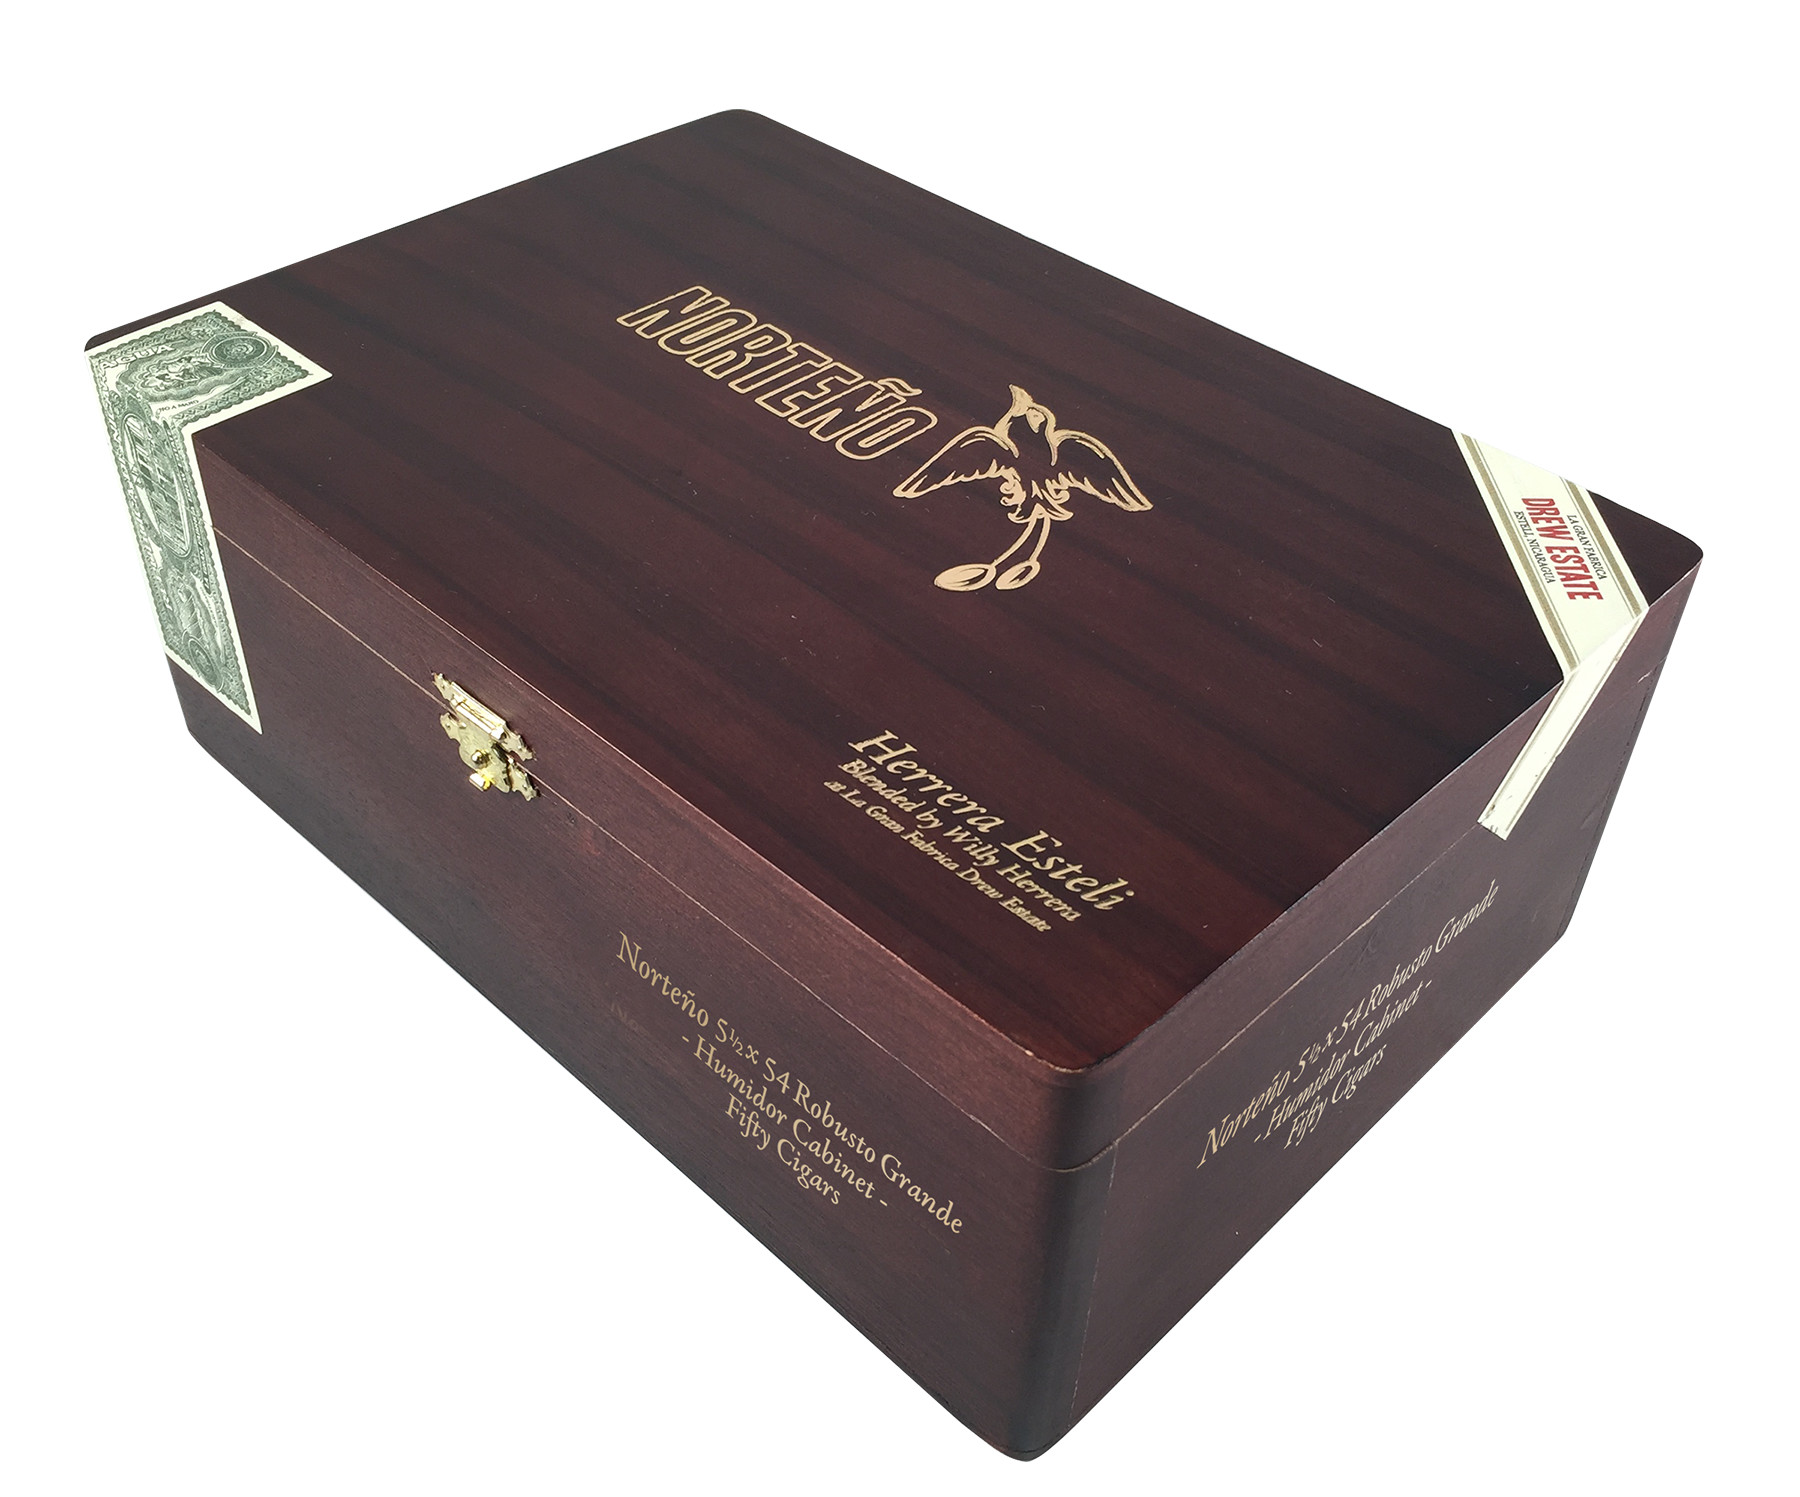 Norteno_50ct_HumidorCabinet_SmallPic_Closed